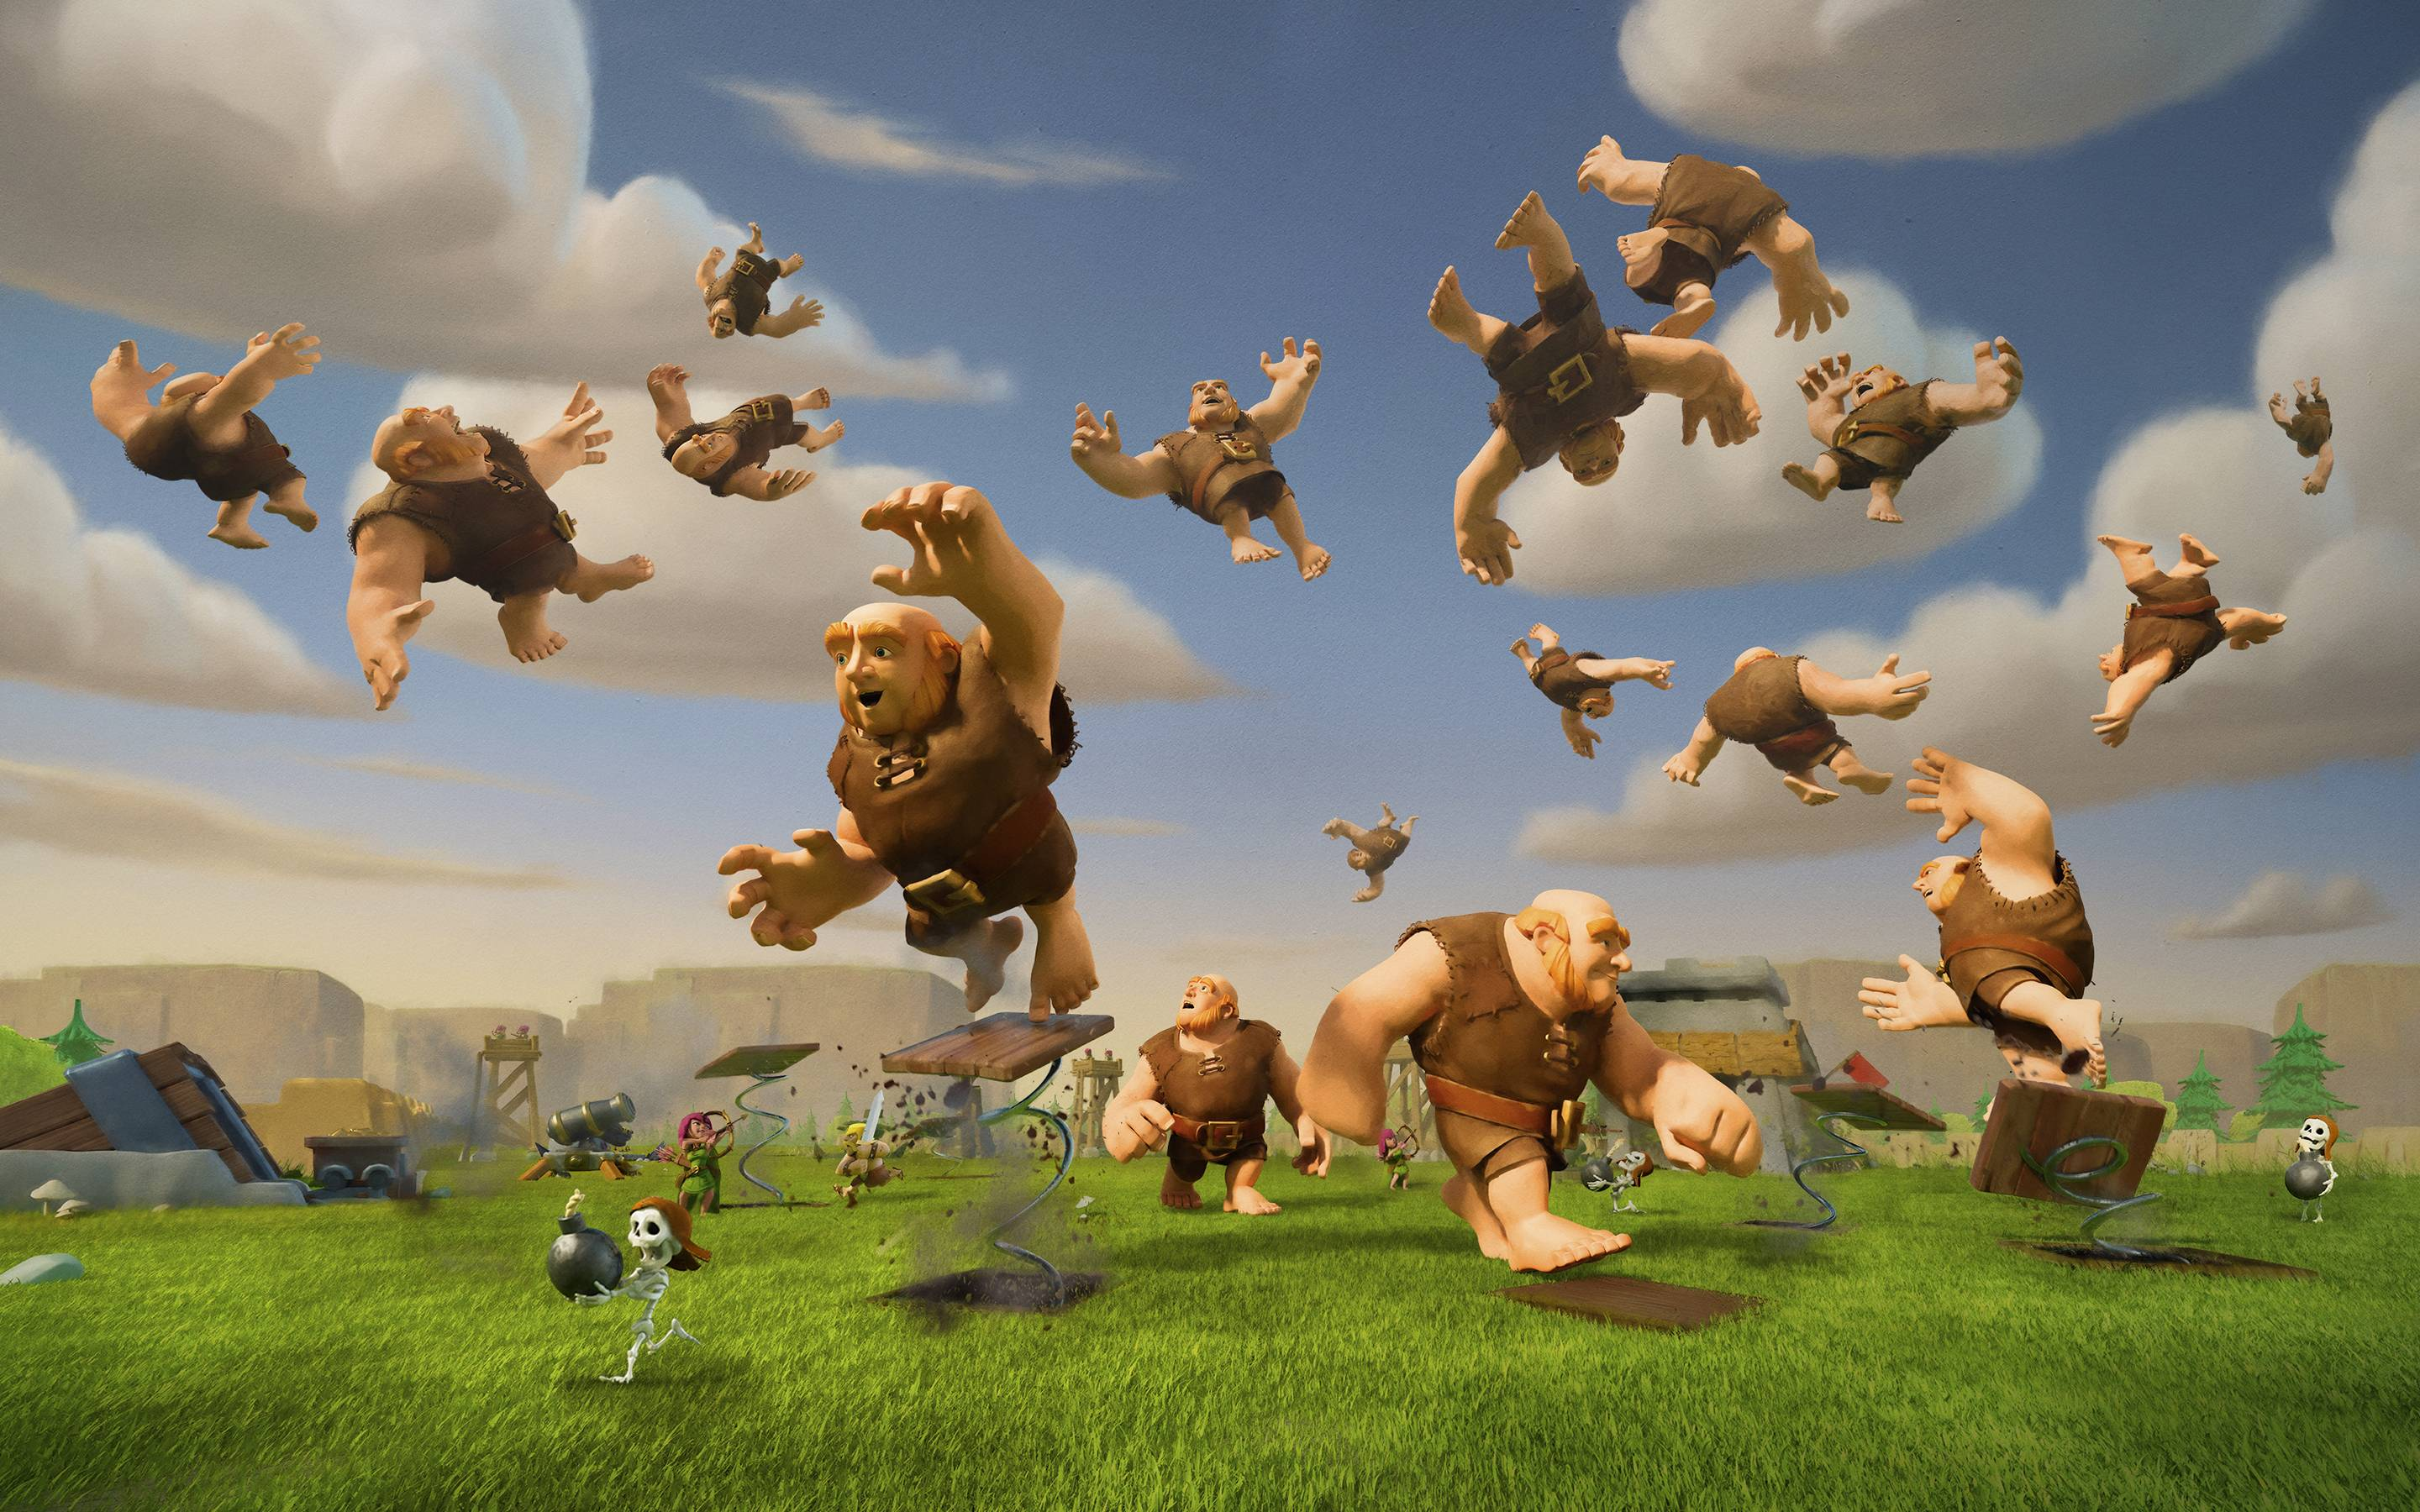 Clash of Clans Giants Wallpaper 58489 2880x1800 px 2880x1800